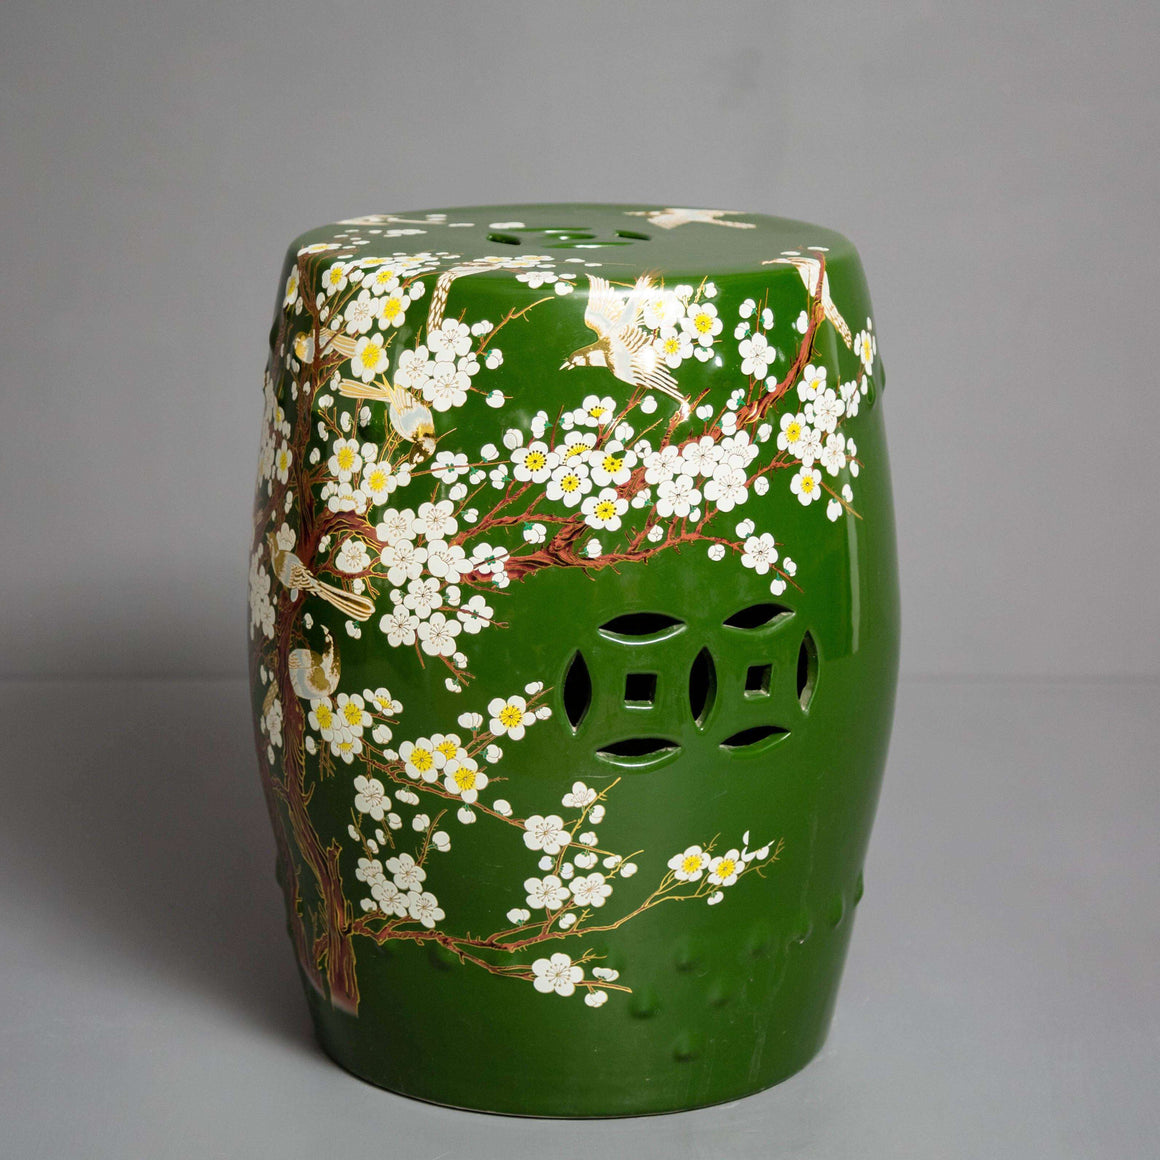 'Cherry Blossom' Hand-painted Living Room Garden Stool - Forest Green